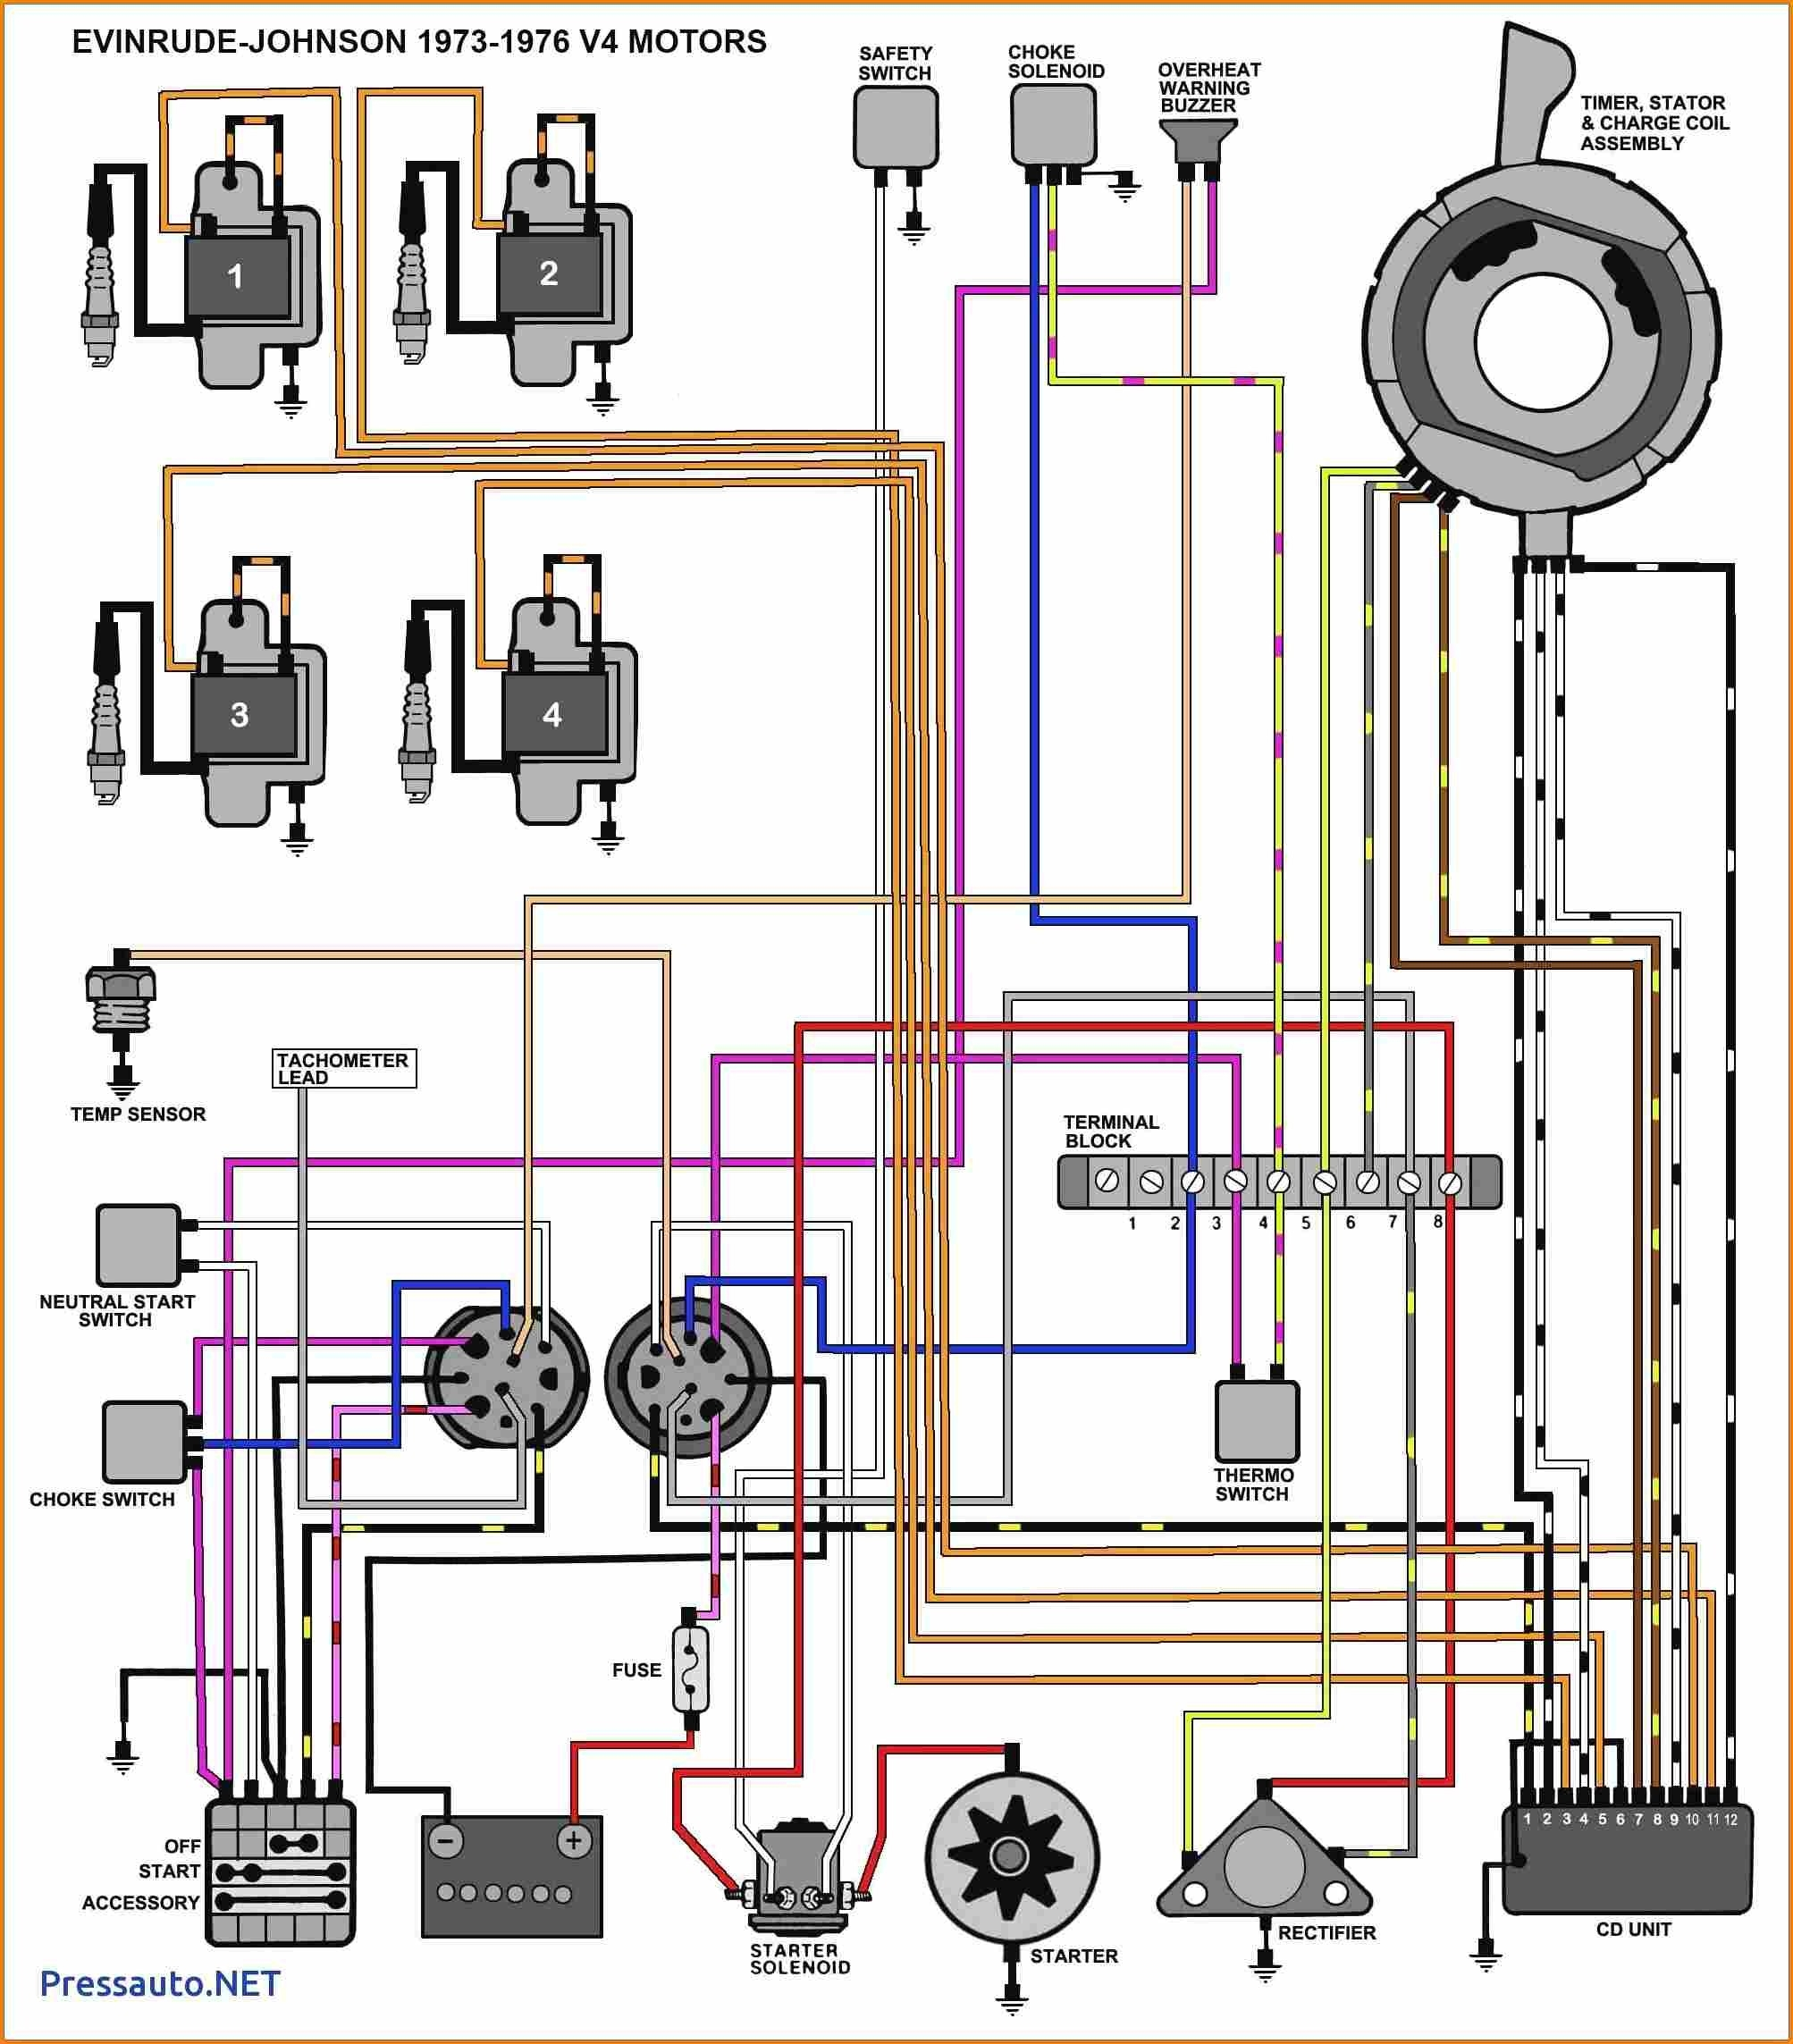 wiring diagram for mercury outboard motor | free wiring ... 1973 evinrude ignition switch wiring diagram 60hp evinrude ignition switch wiring diagram